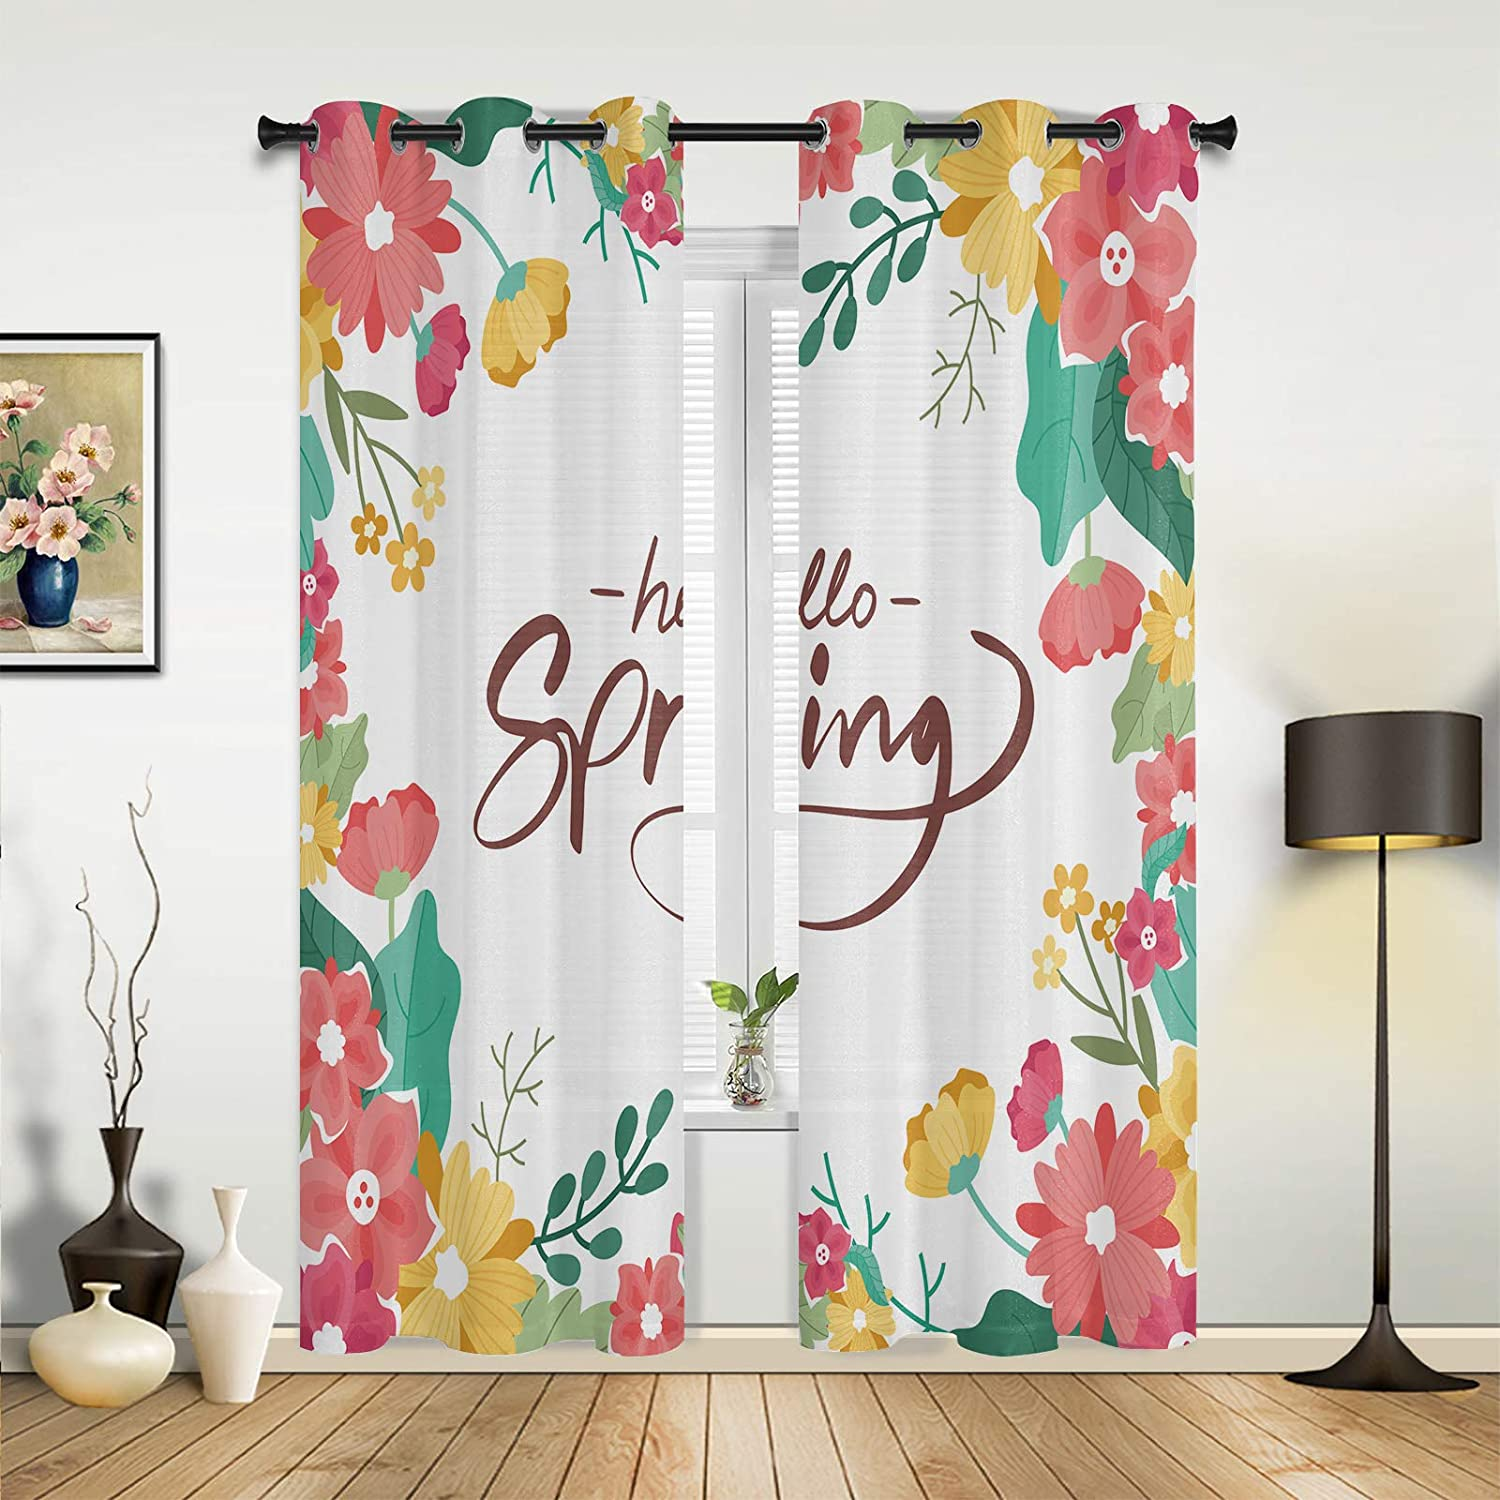 Window All items free shipping Sheer Price reduction Curtains for Bedroom Gorge Room Hello Living Spring